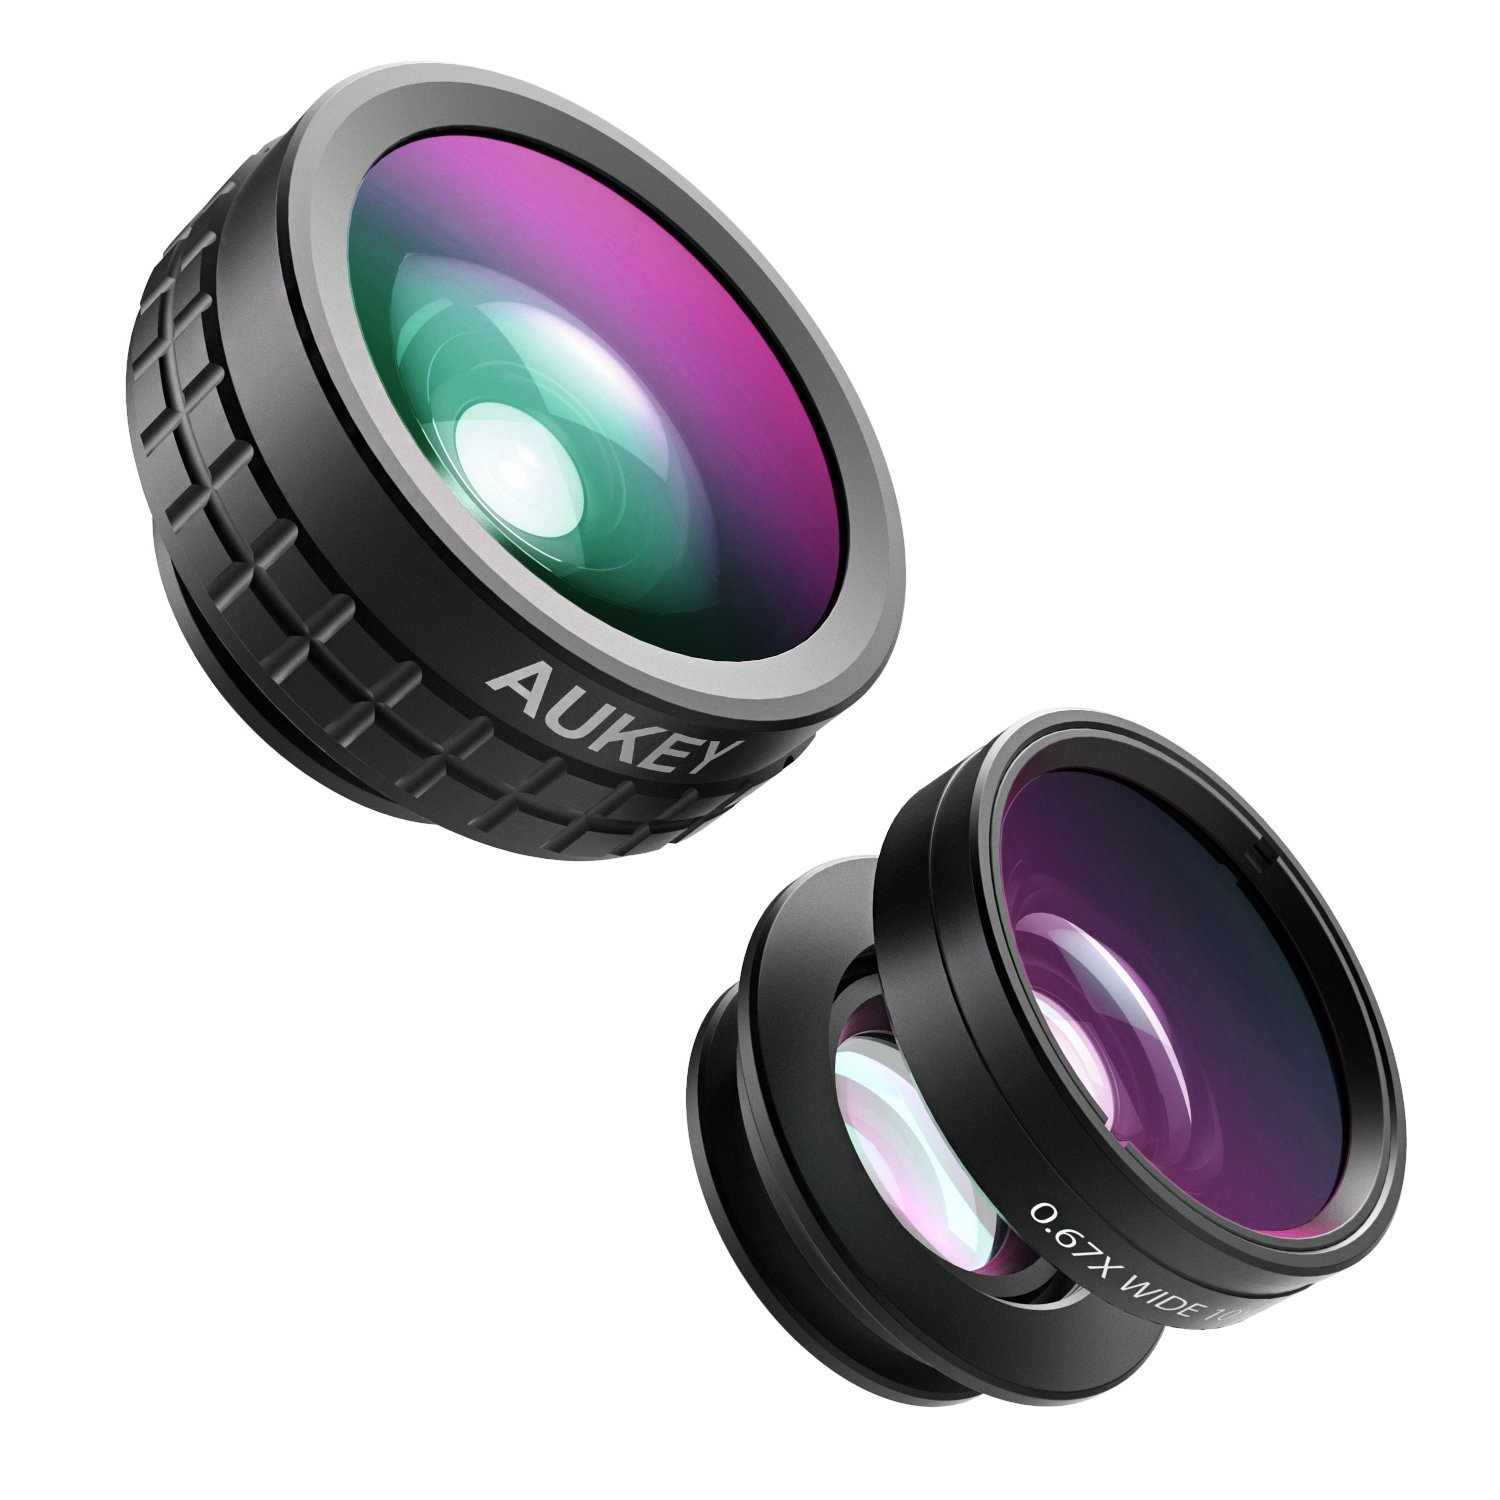 AUKEY Optic iPhone Lens Kit for Samsung, Android Smartphones with 180° Fisheye Lens & 110° Wide Angle